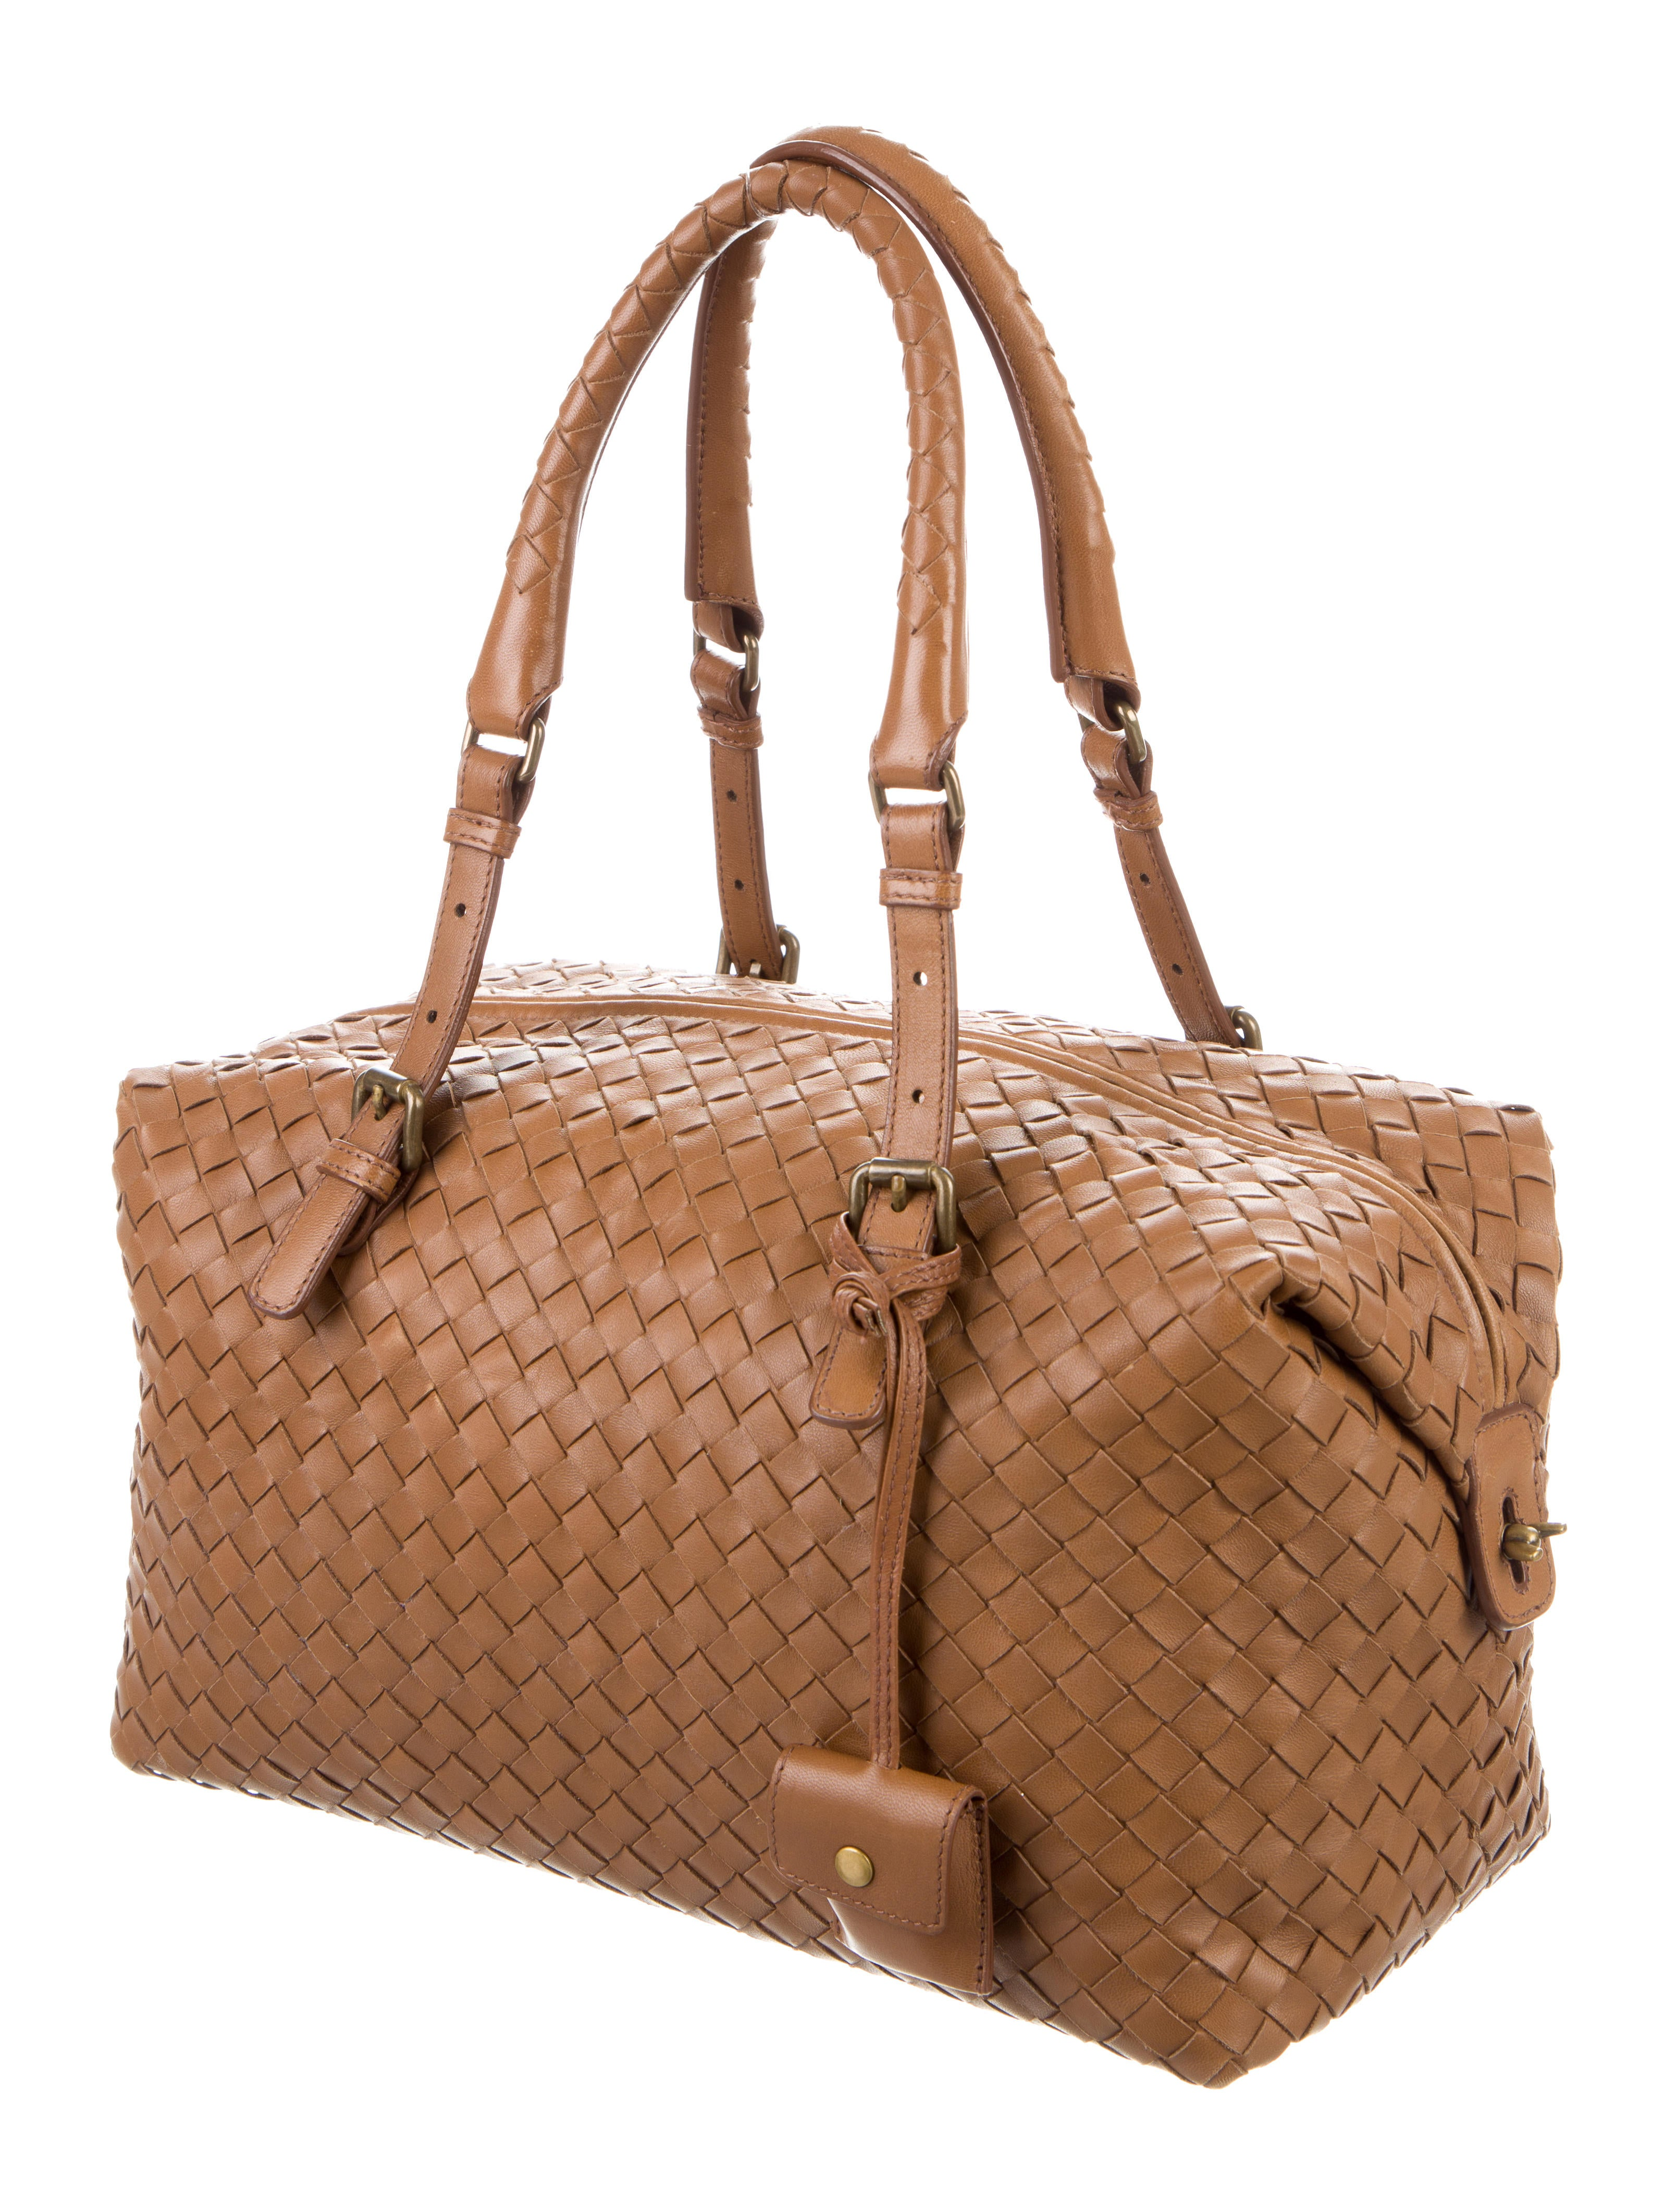 Overstock uses cookies to ensure you get the best experience on our site. Authentic LongChamp Le Pliage Neo Small Tote. New Arrival. Quick View $ 52 - $ 66 Casual Women Crocodile Shoulder Bags Big Tote Bags Large Capacity Handbag. New Arrival.